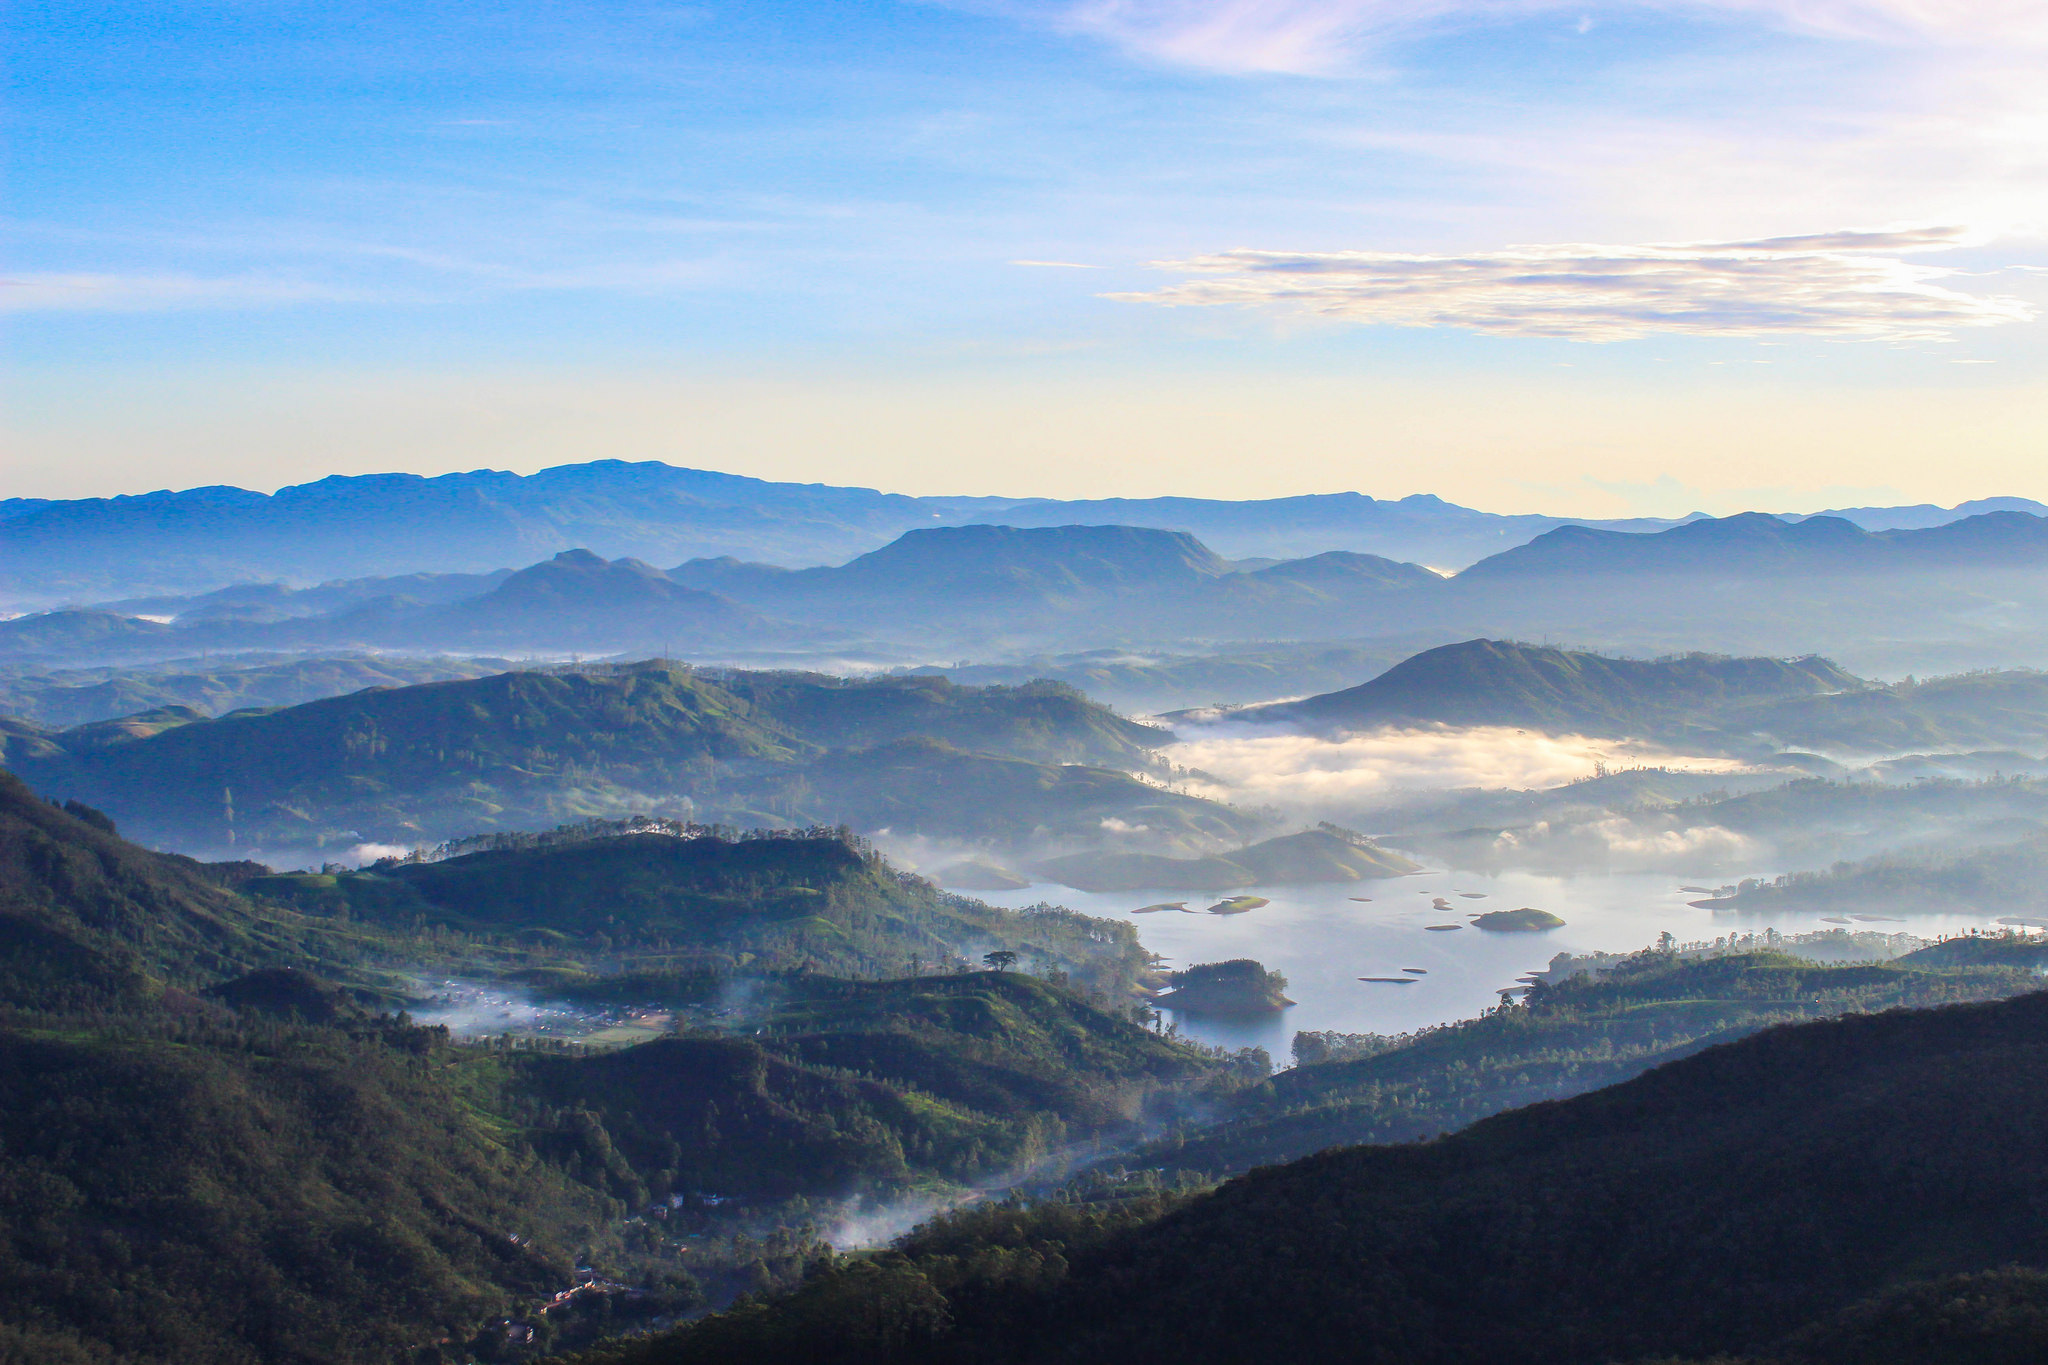 View of the surrounding countryside from Adam's Peak by Jodie Gallagher